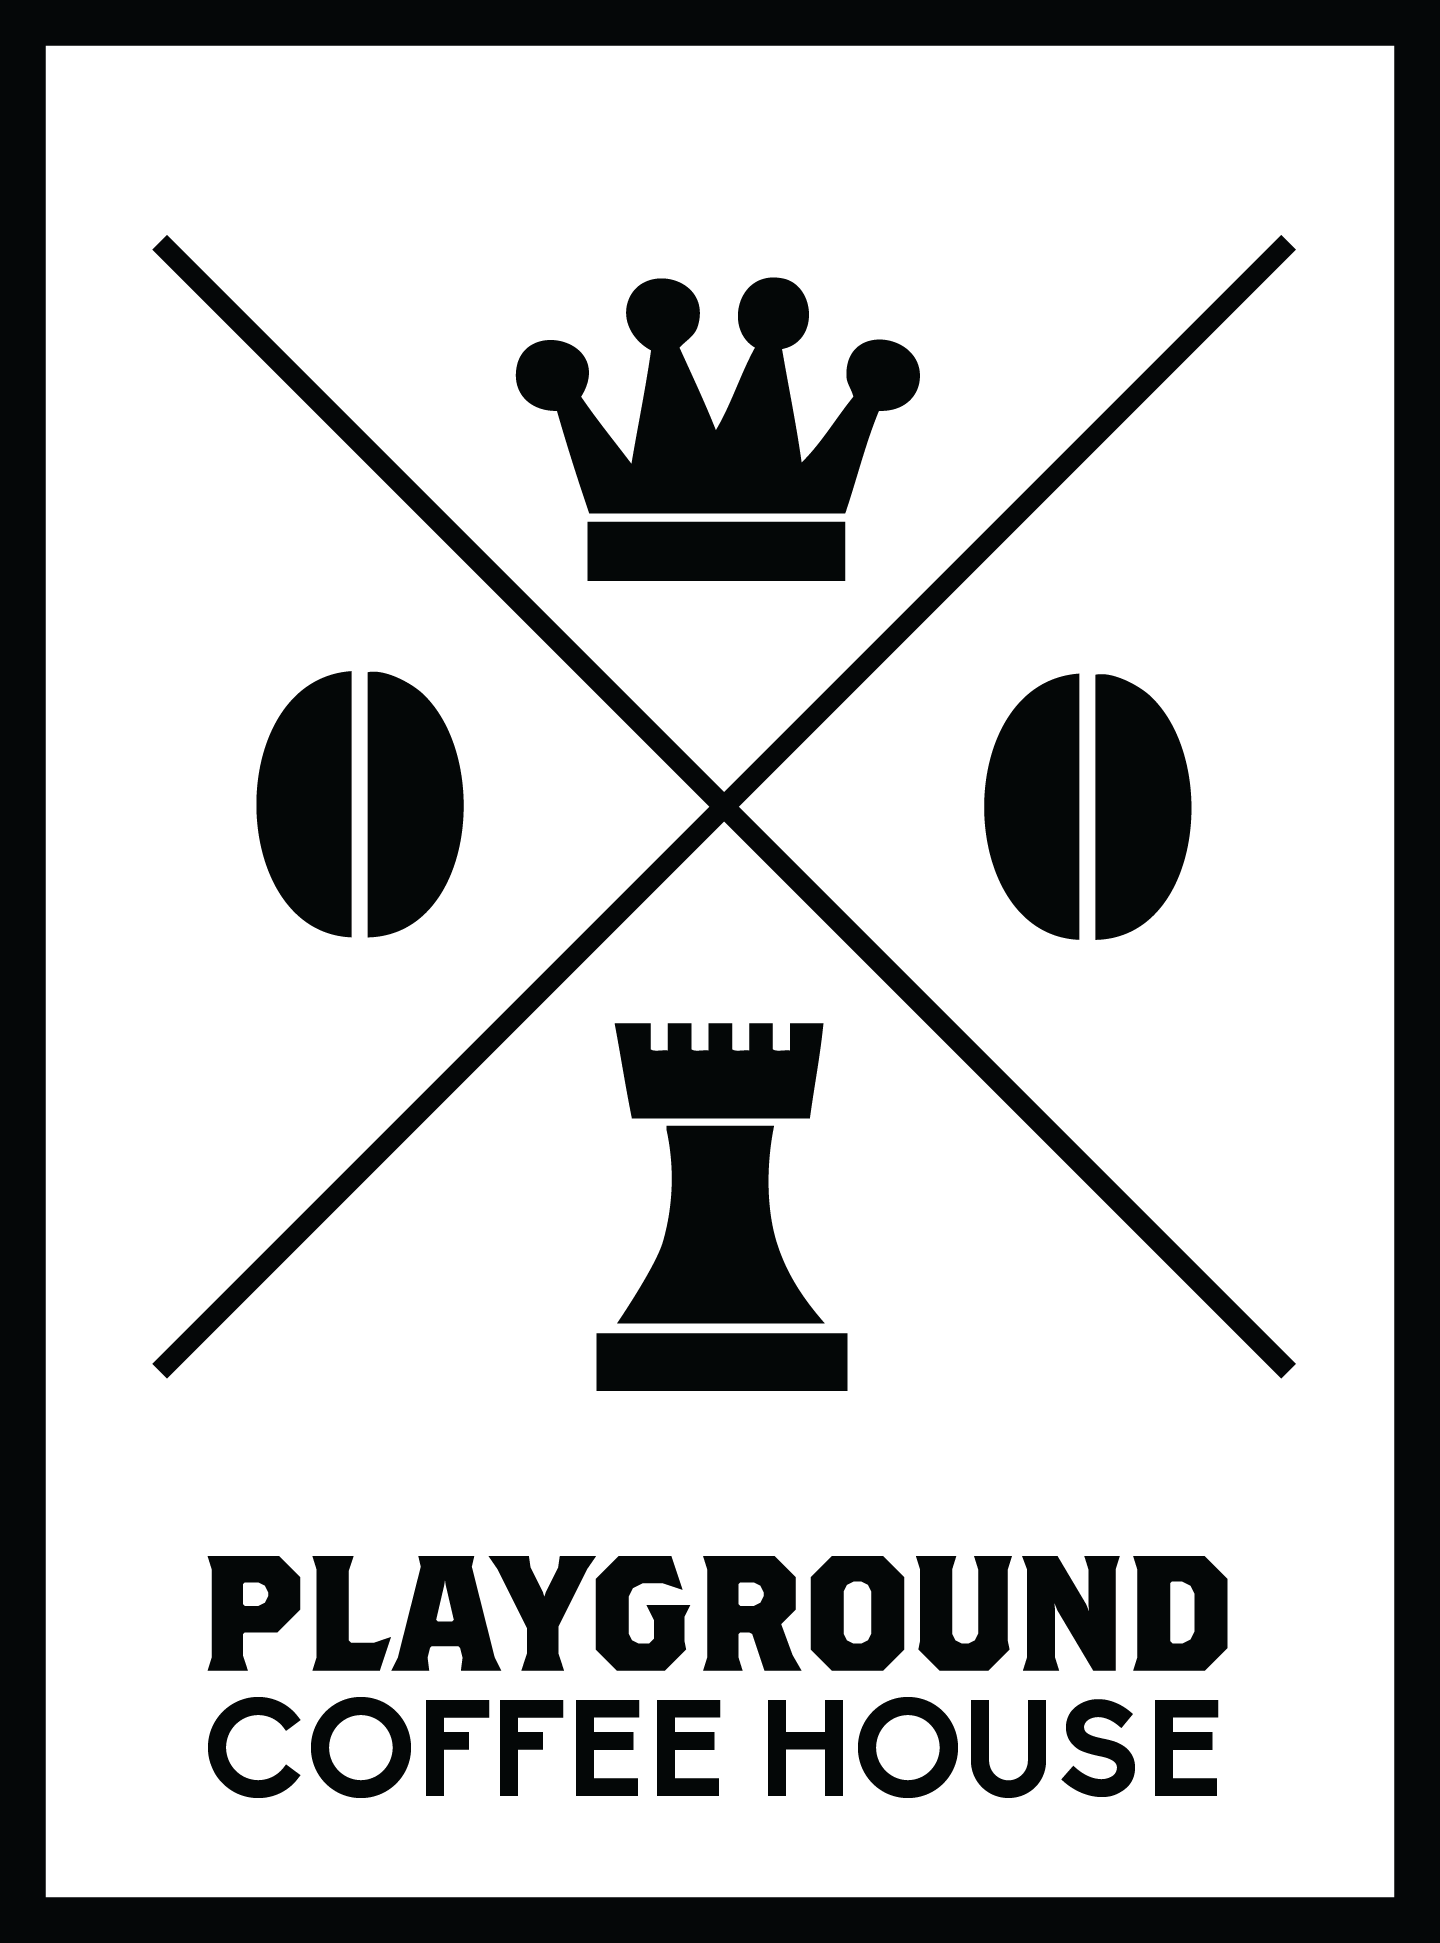 Playground Coffee House